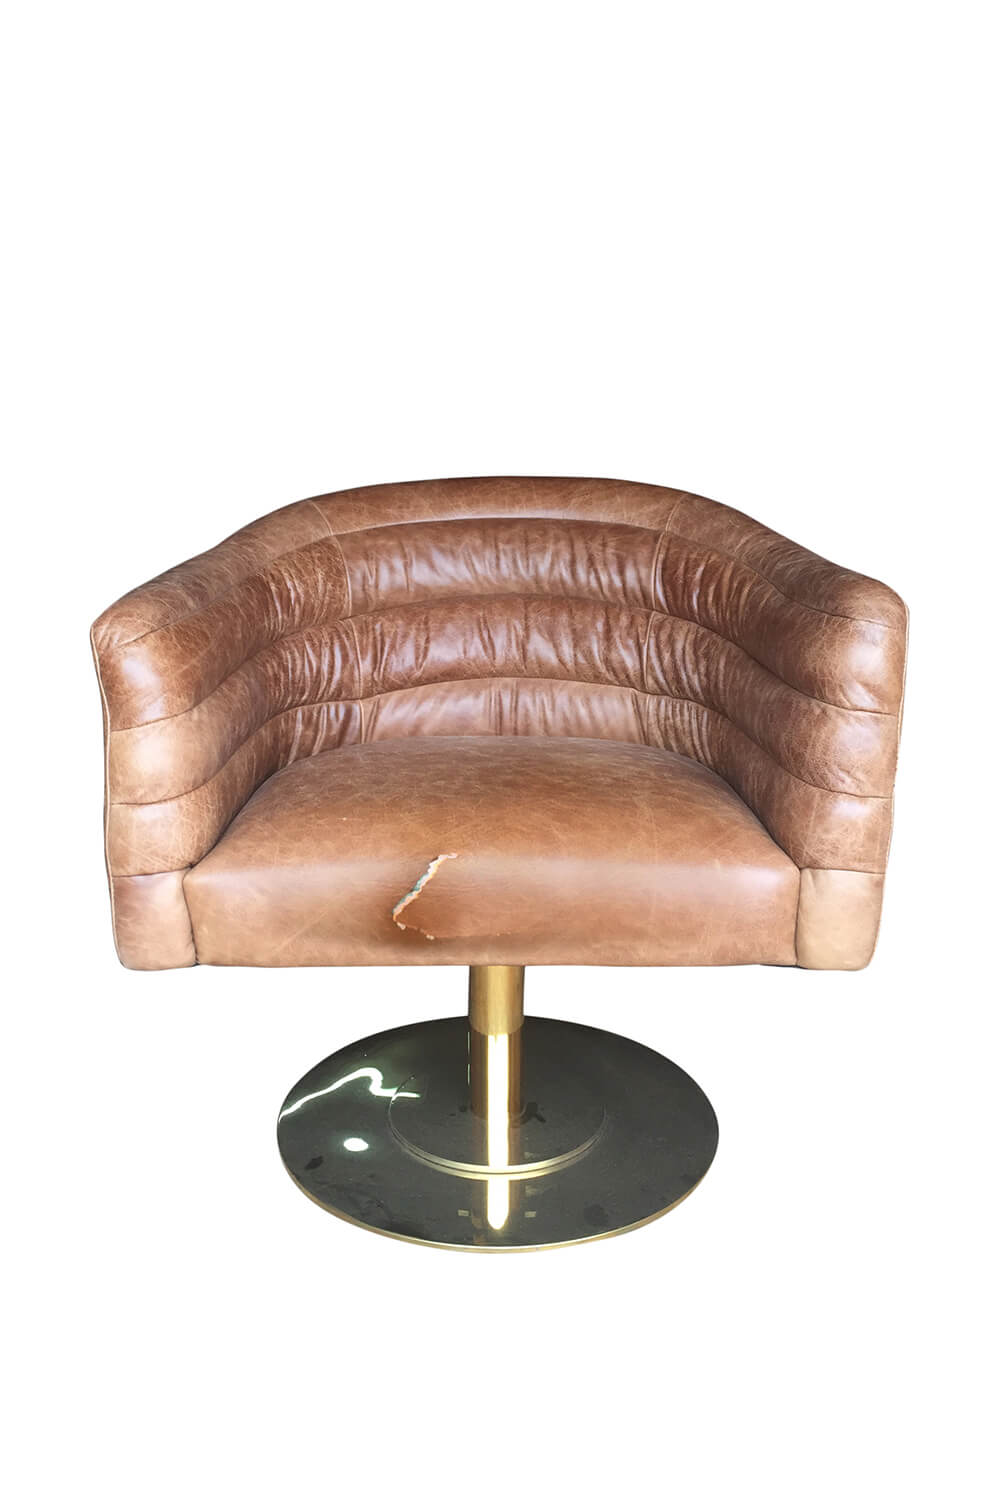 Vintage leather chair reupholstery San Francisco Bay Area and Los Angeles